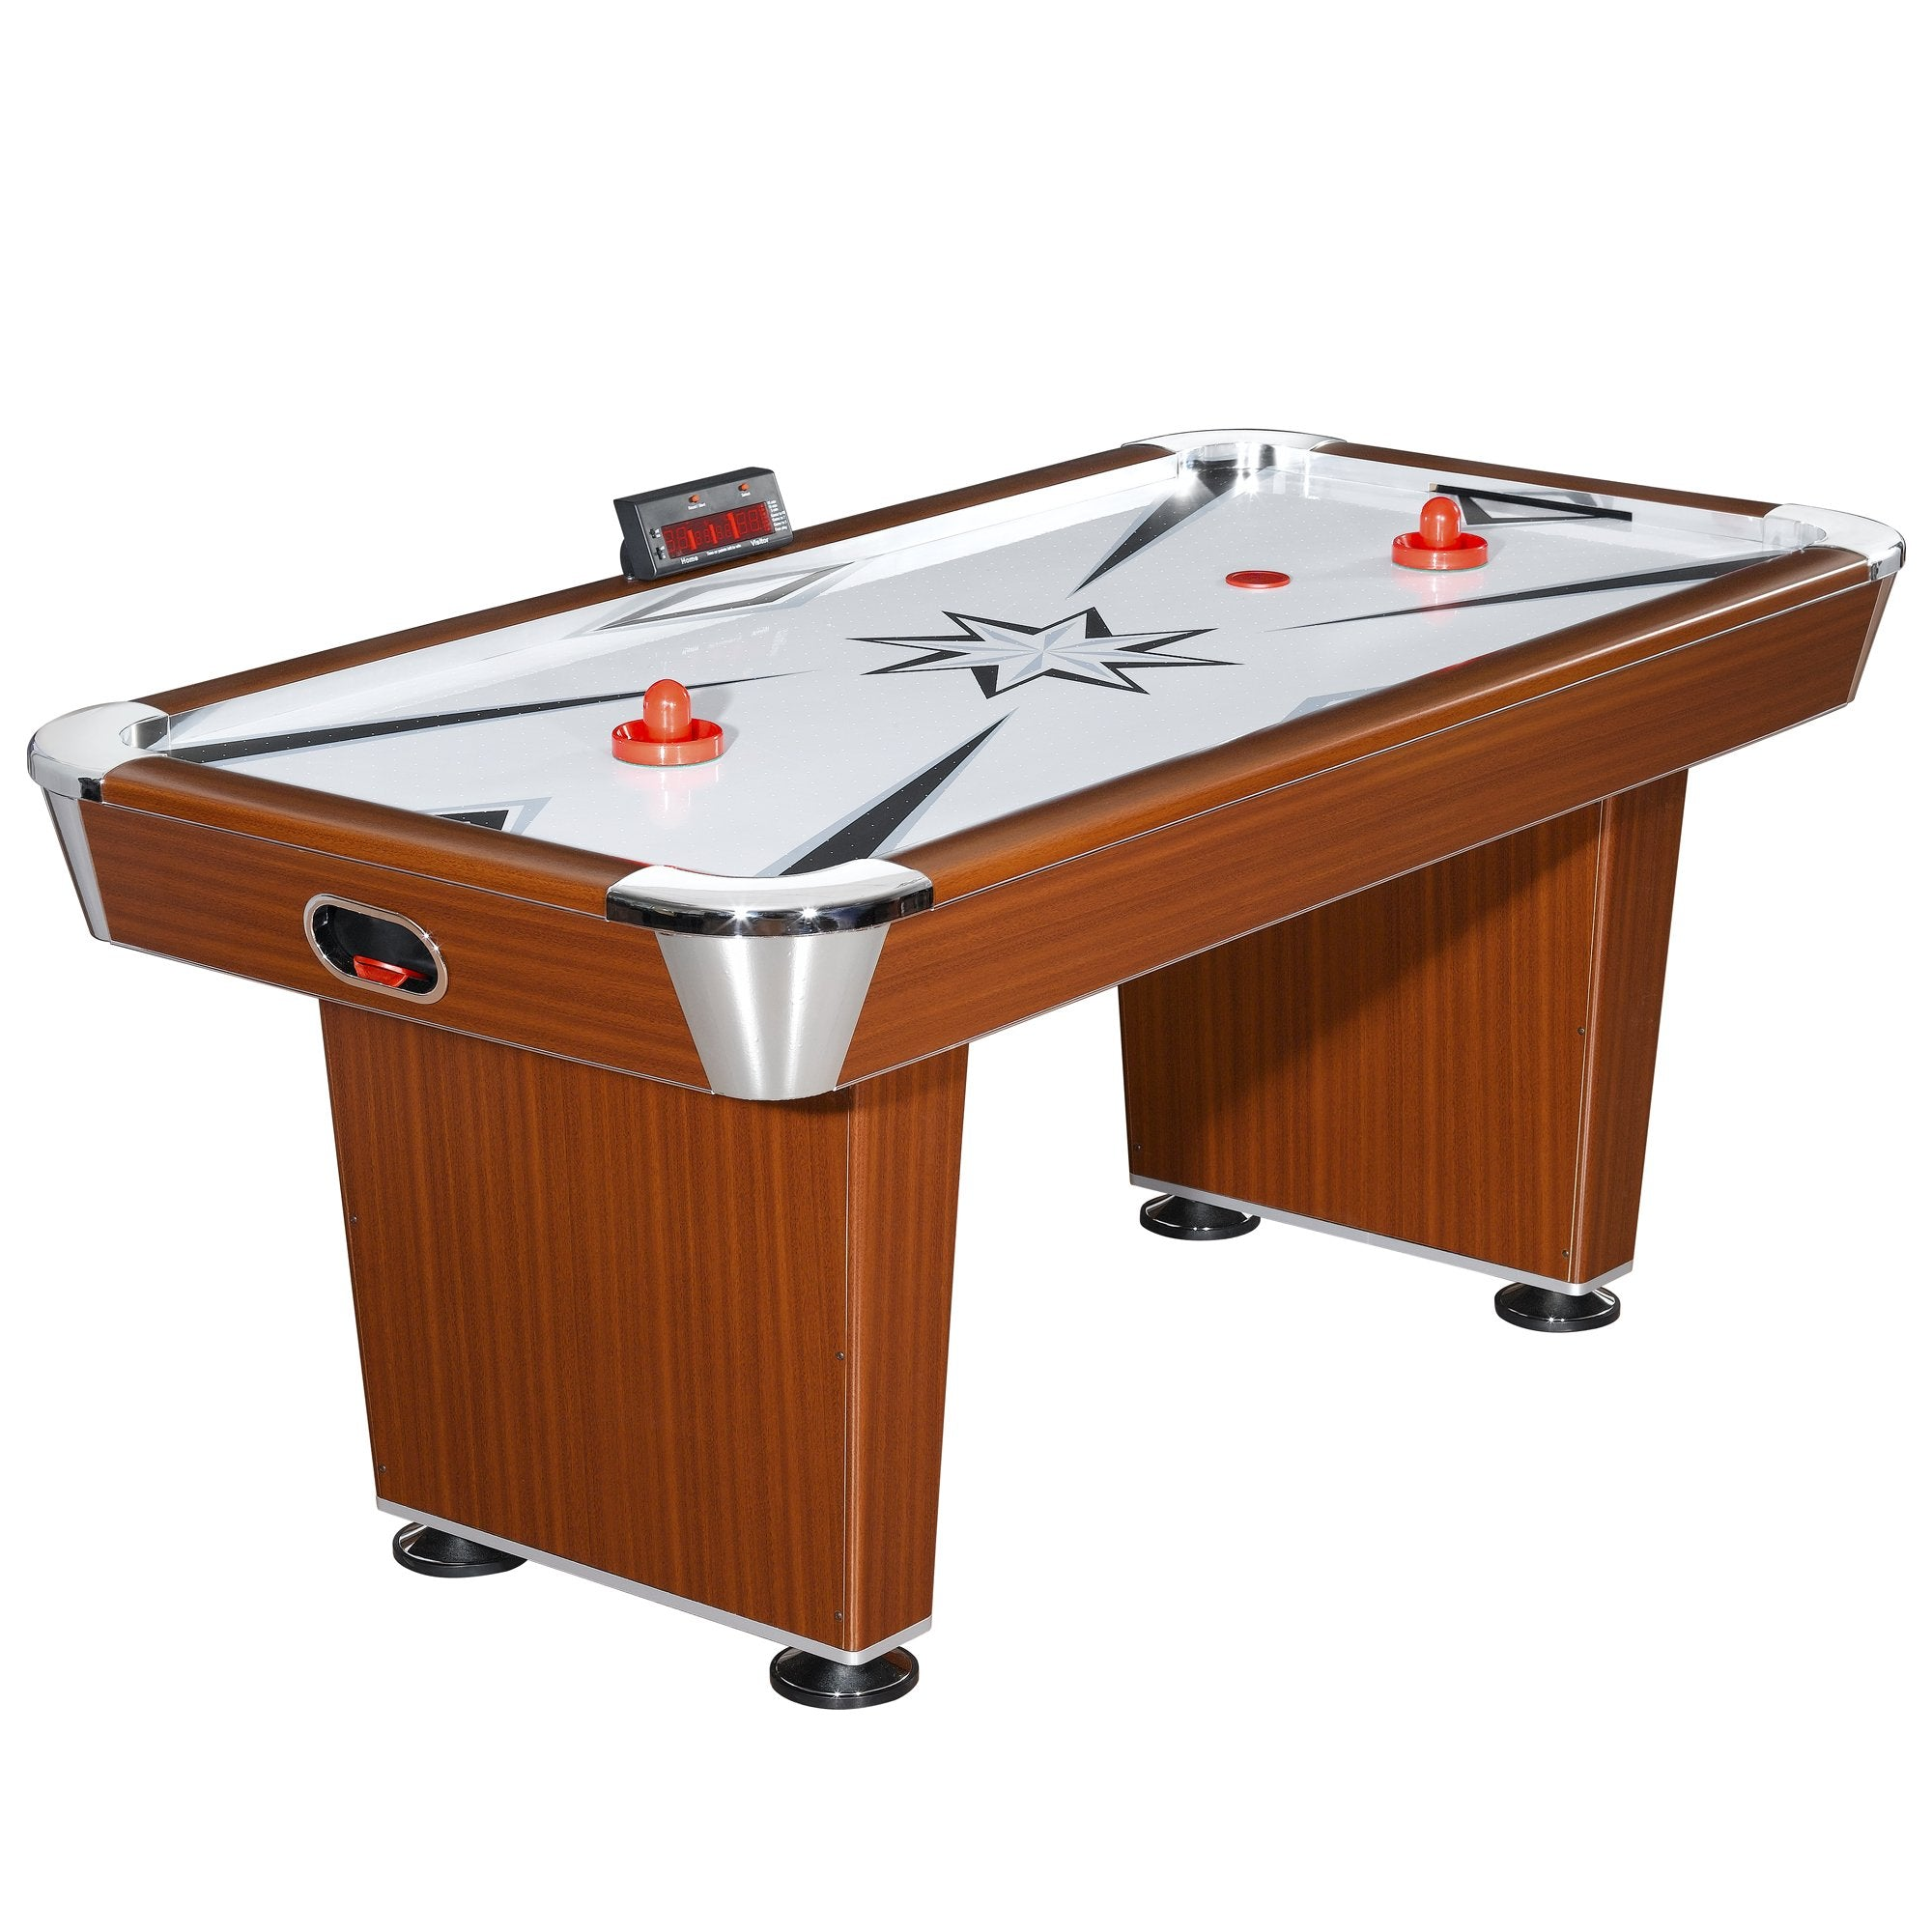 Hathaway Midtown 6ft Air Hockey Table - Gaming Blaze